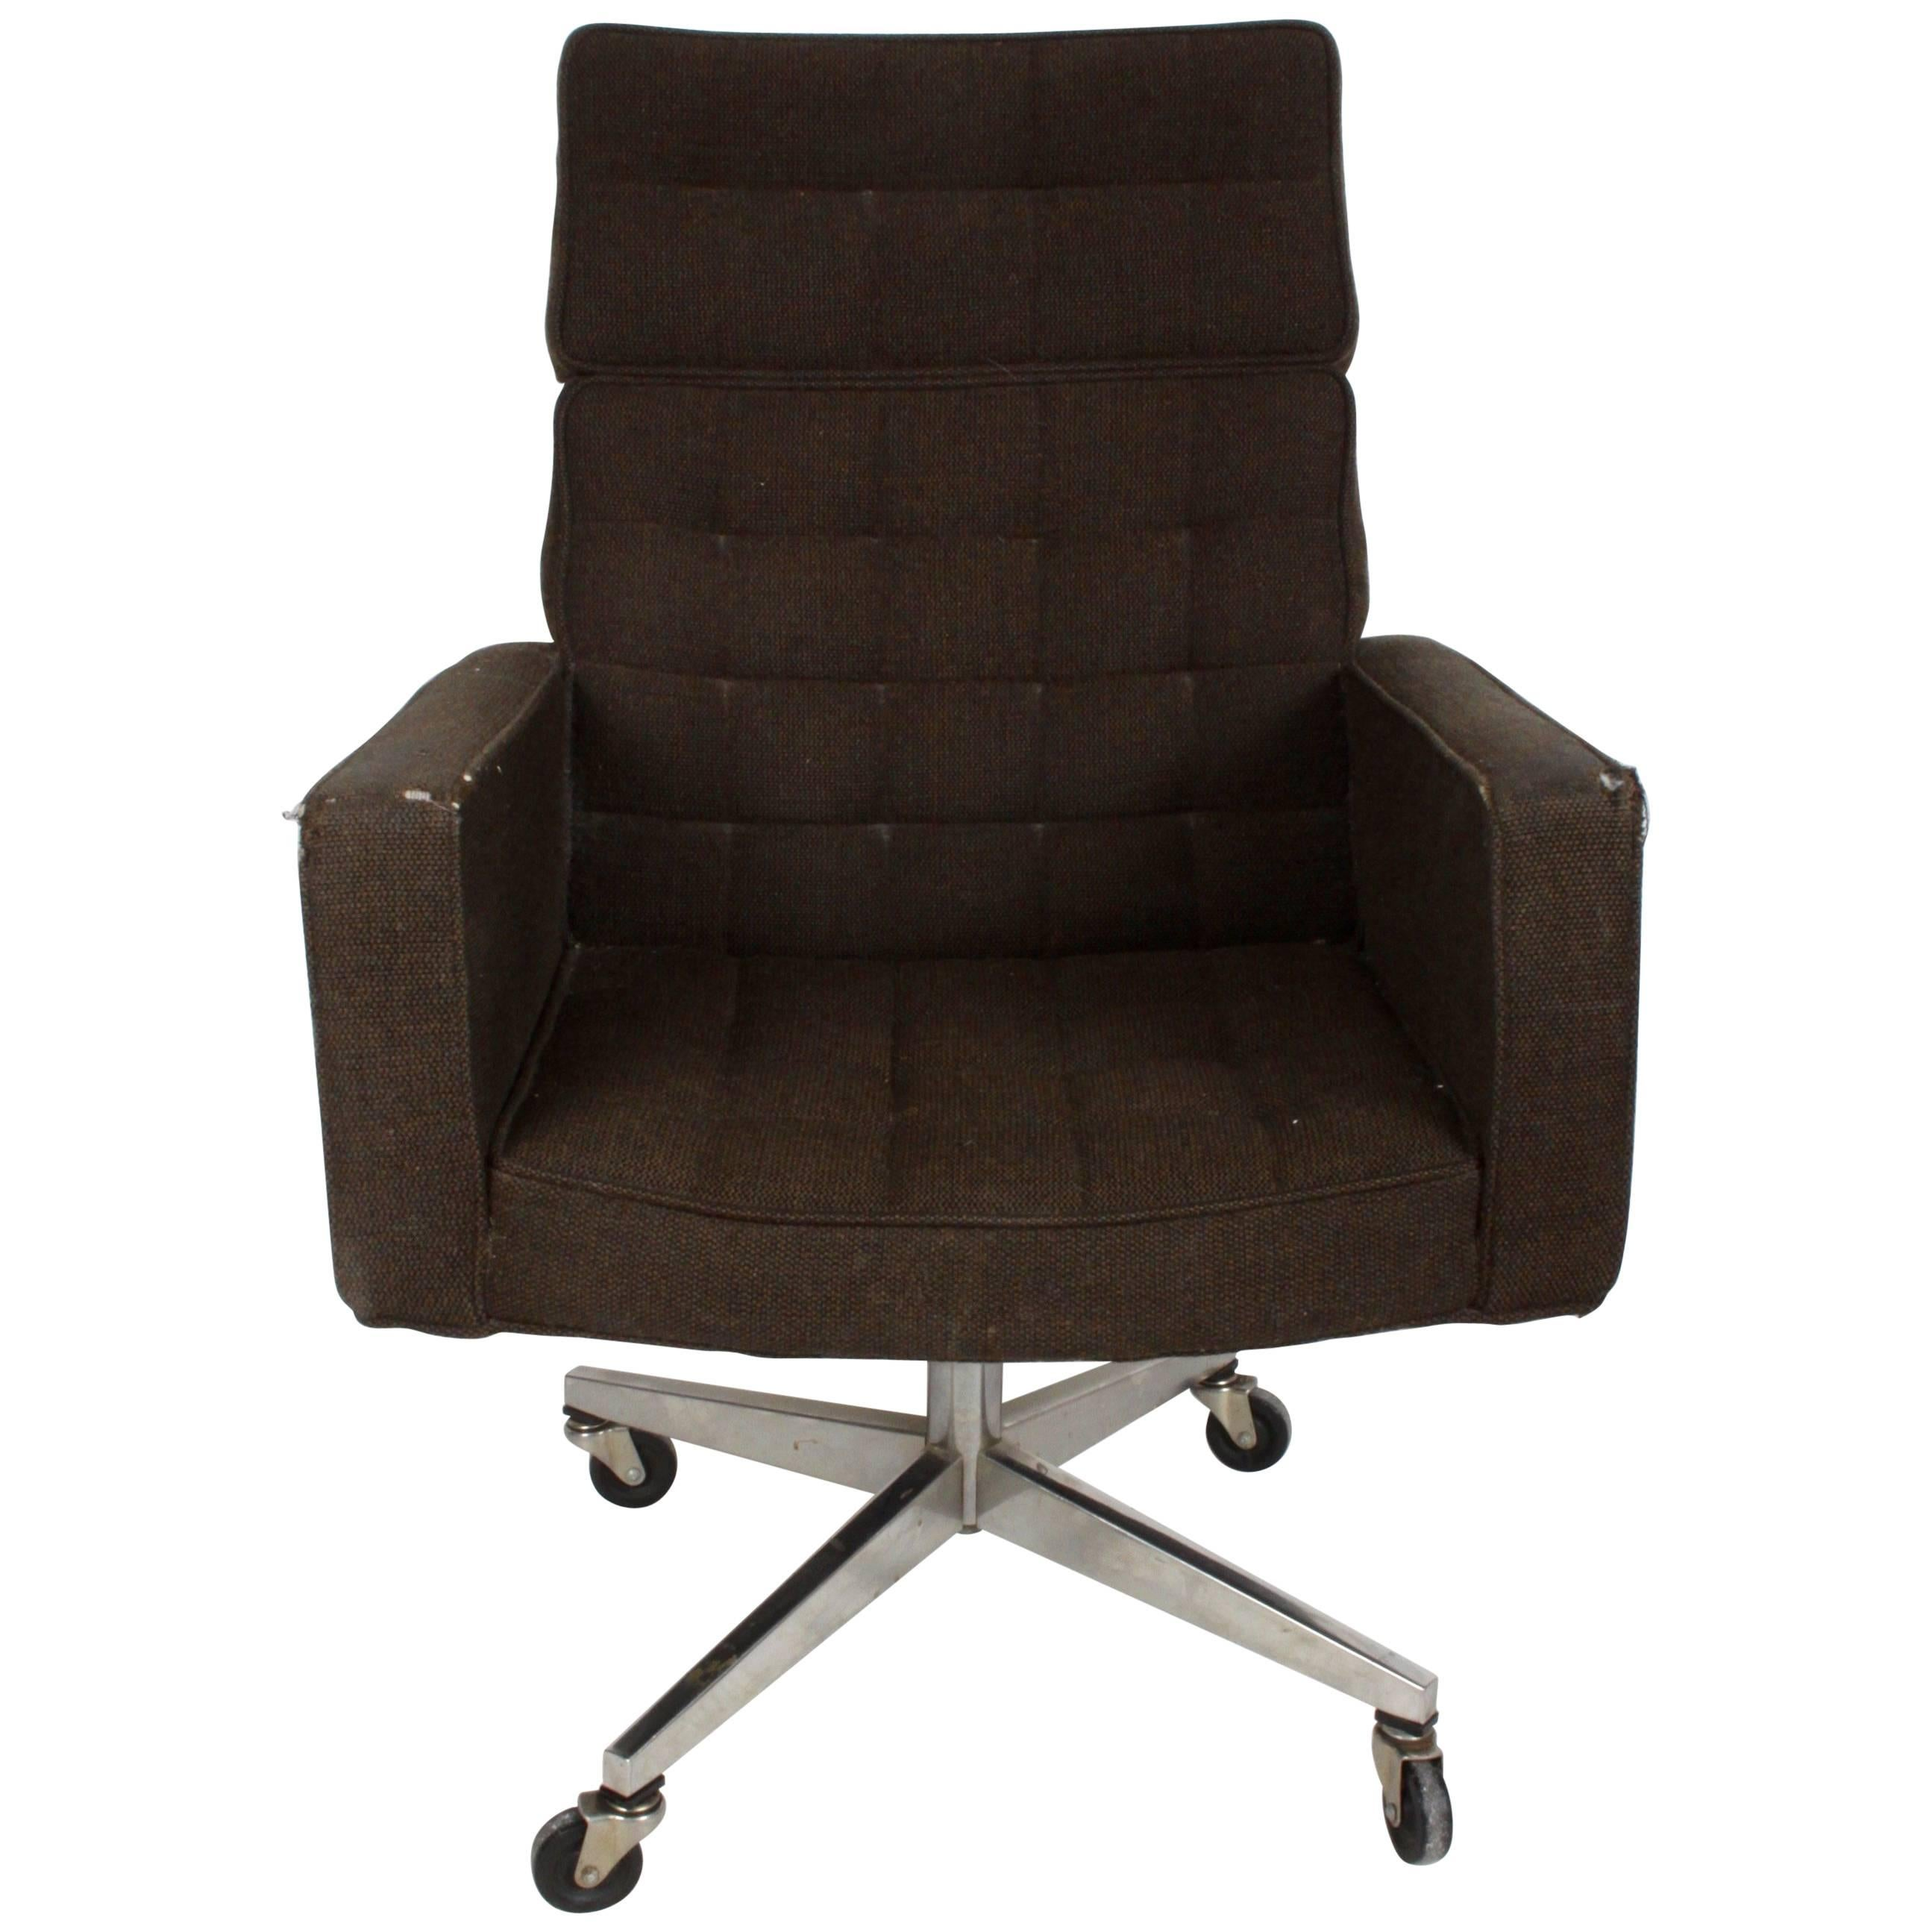 Charmant Vincent Cafiero For Knoll Executive Office Or Desk Chair